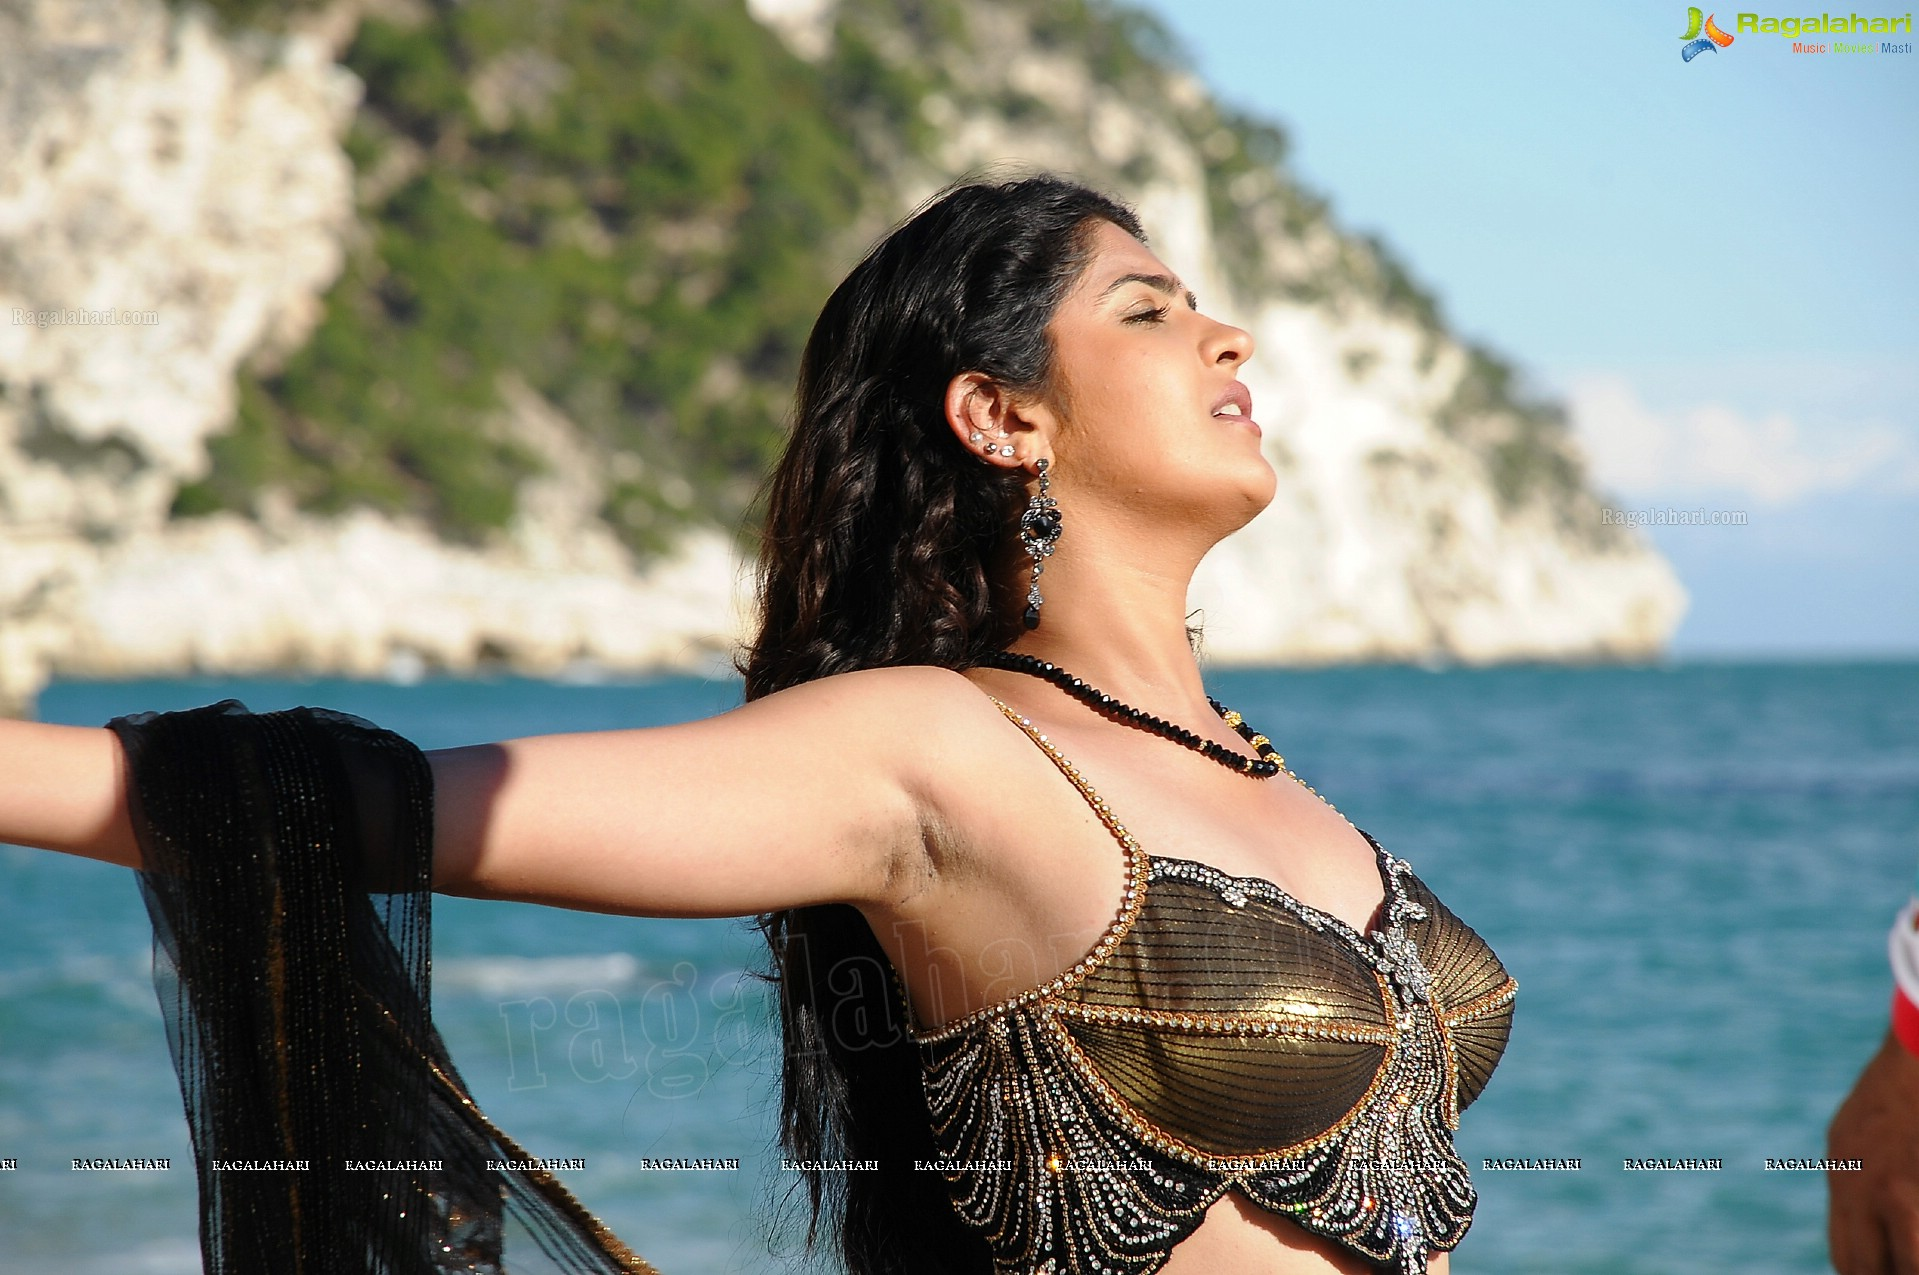 deeksha seth (high definition) image 81 | tollywood actress gallery